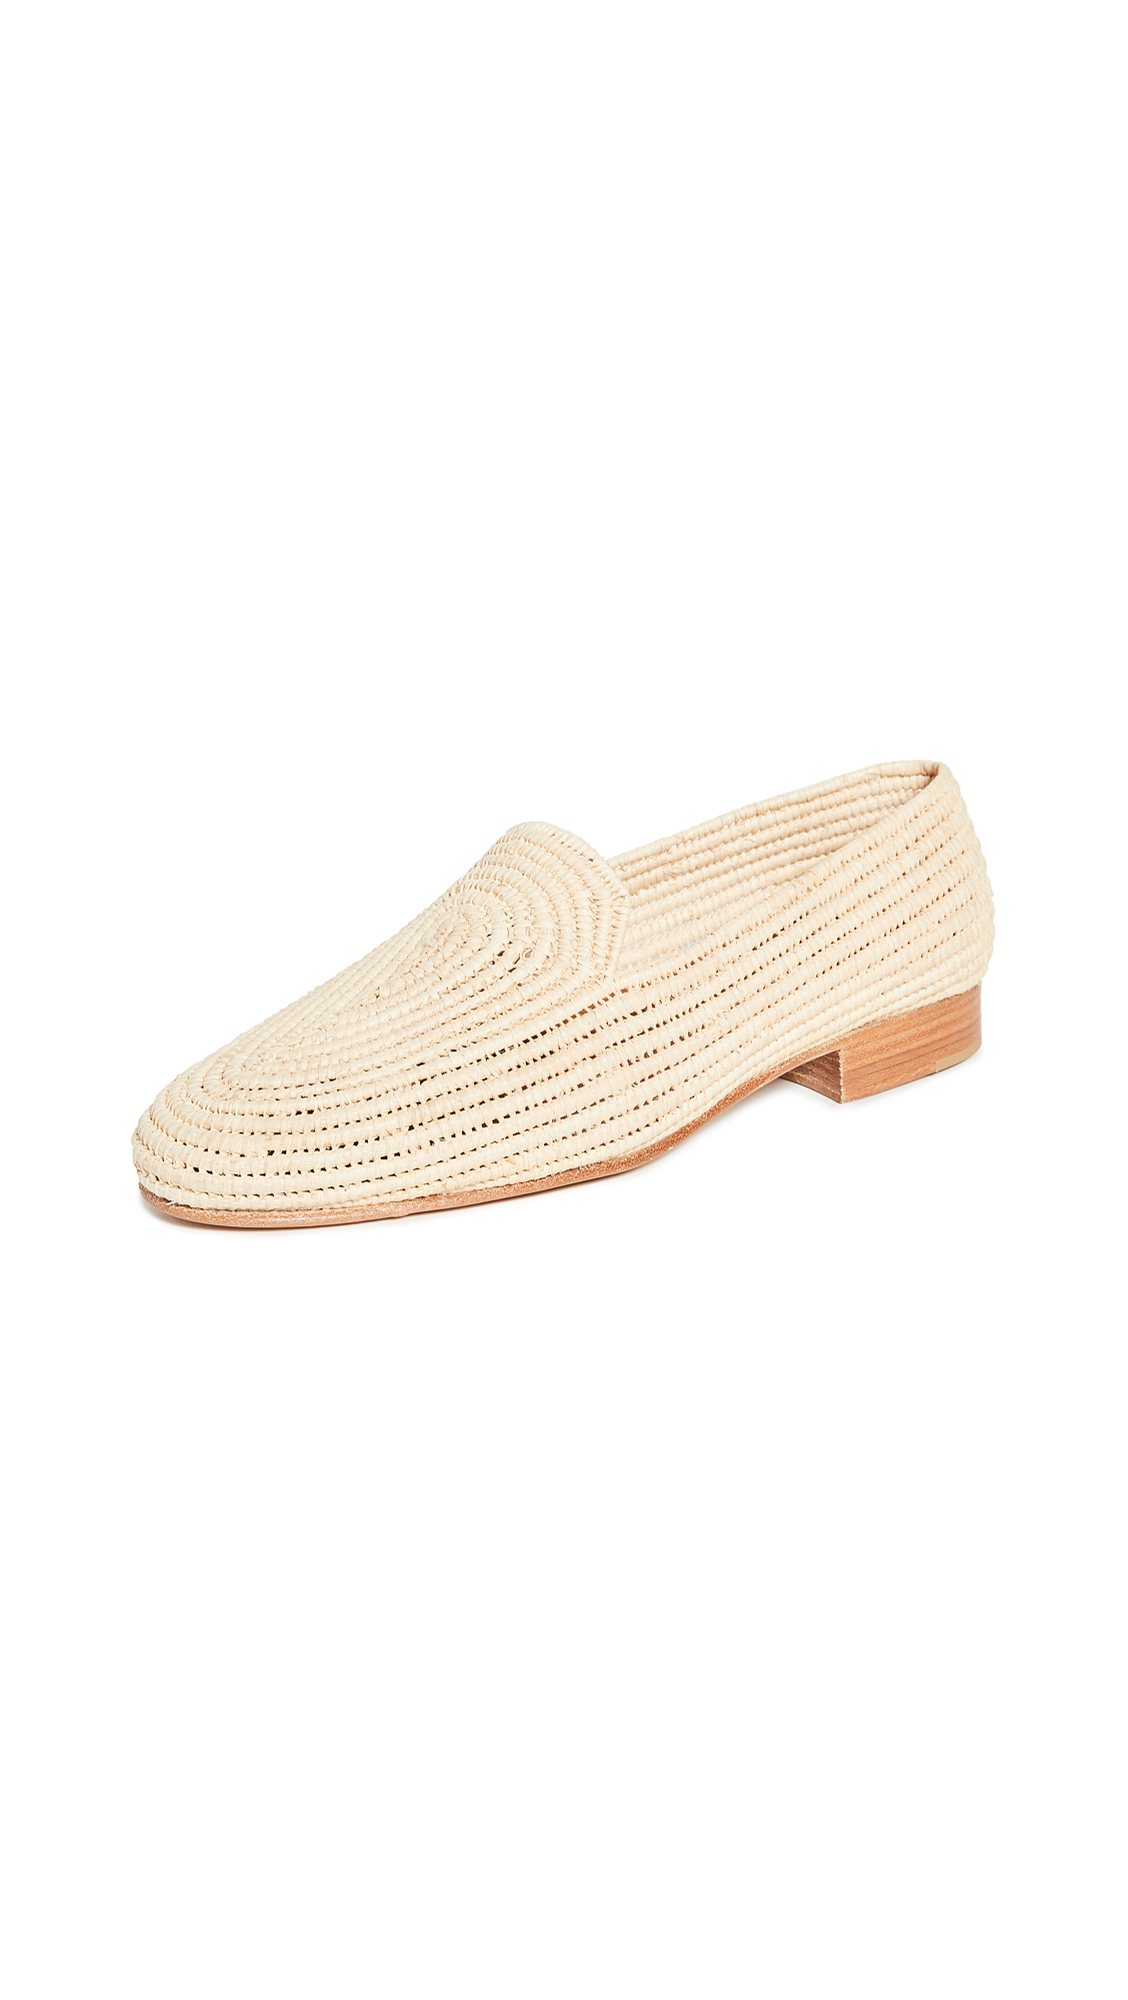 Buy Carrie Forbes Atlas Loafers online, shop Carrie Forbes